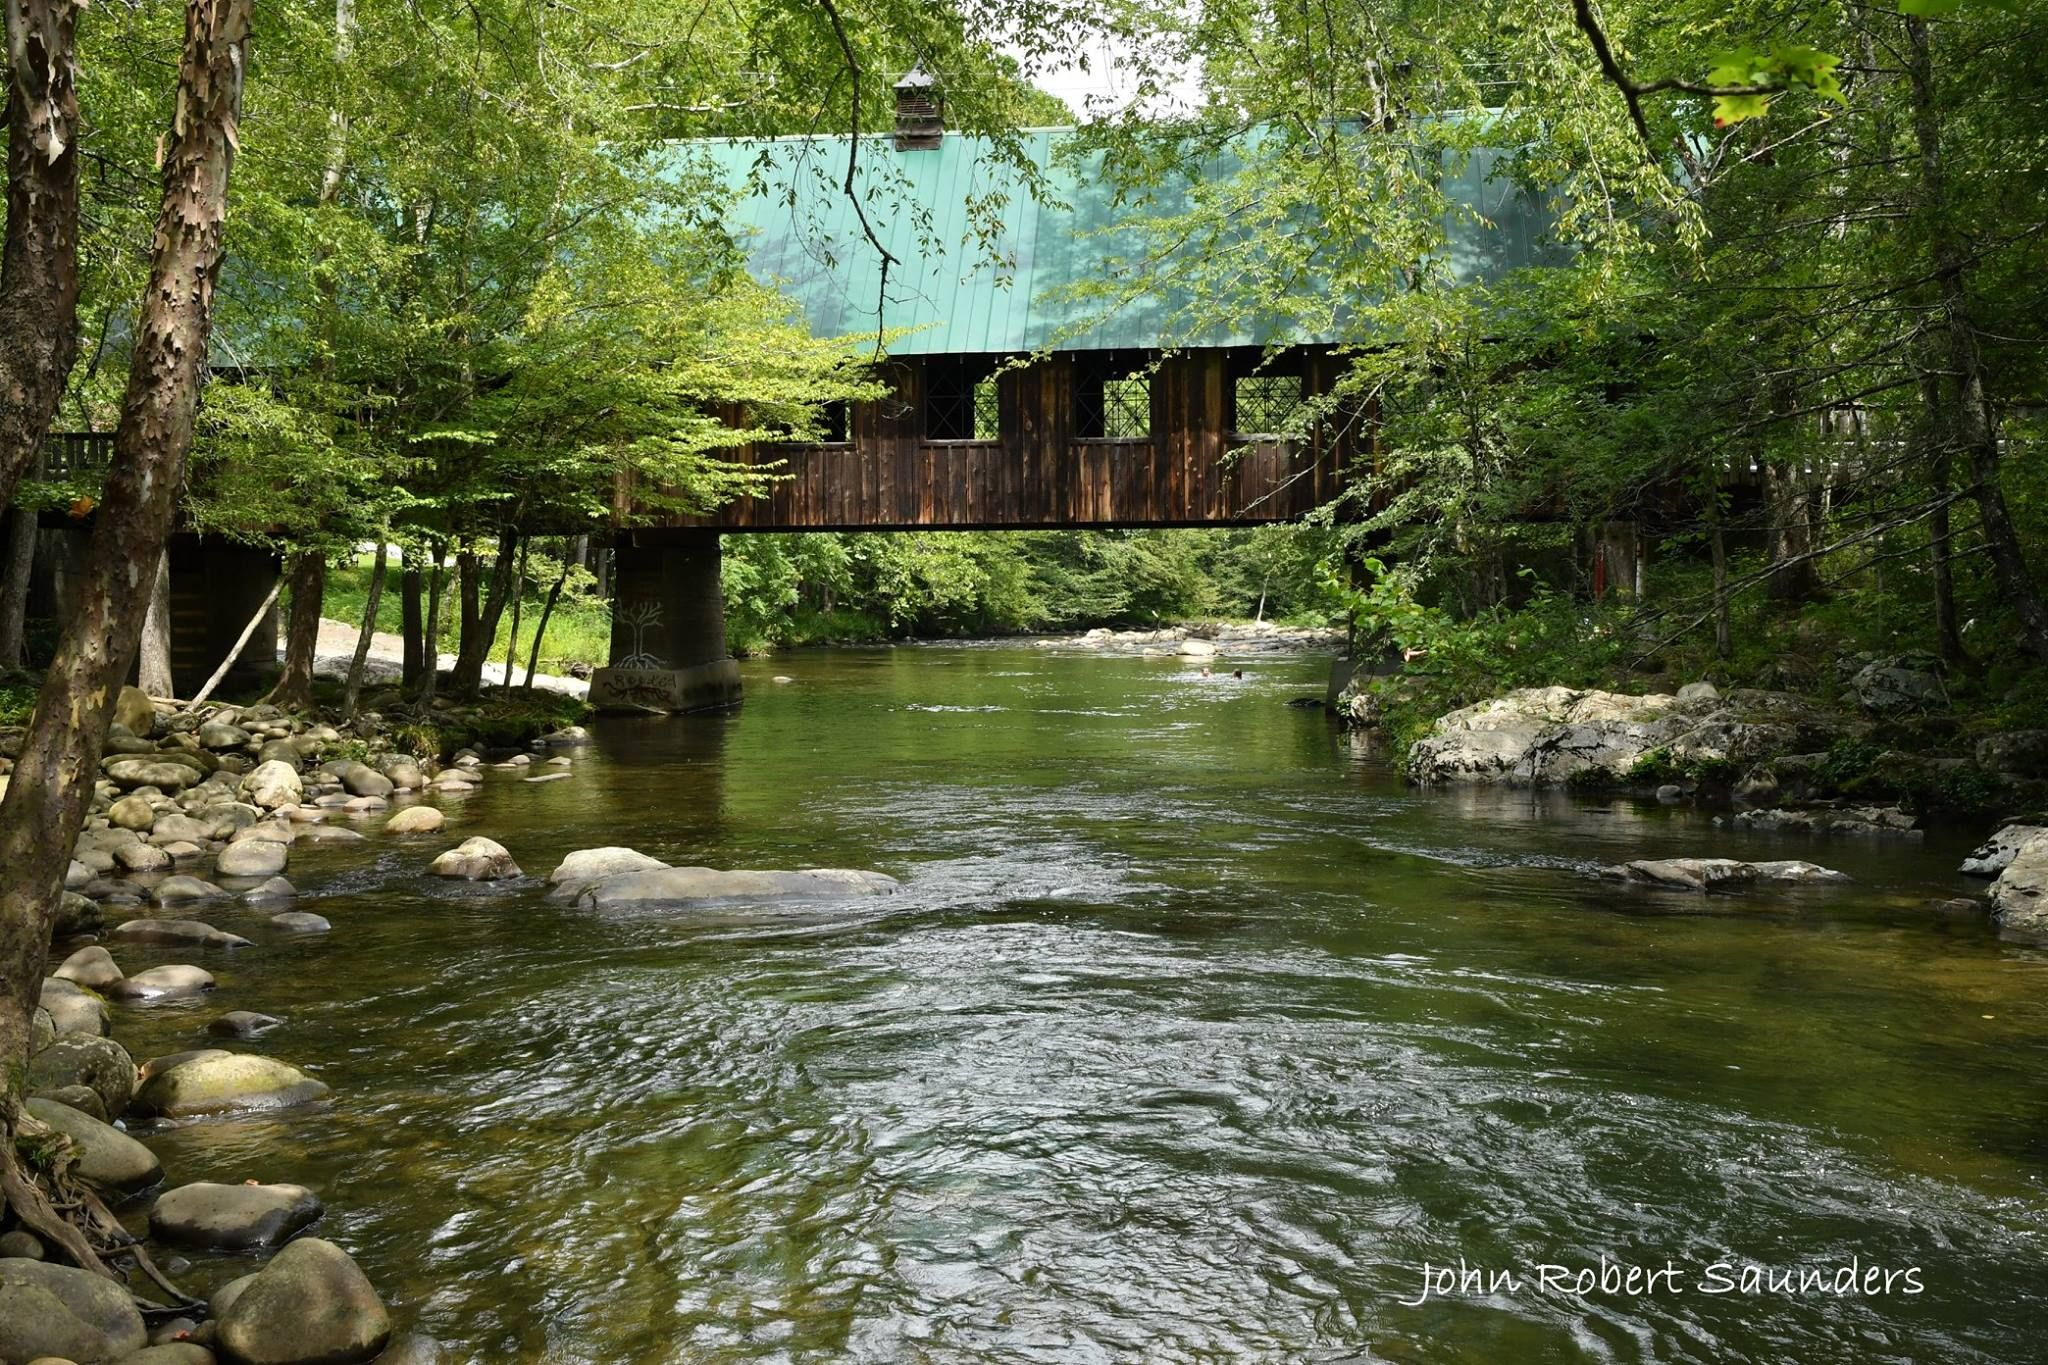 Emert S Cove Covered Bridge In The Smoky Mountains In 2019